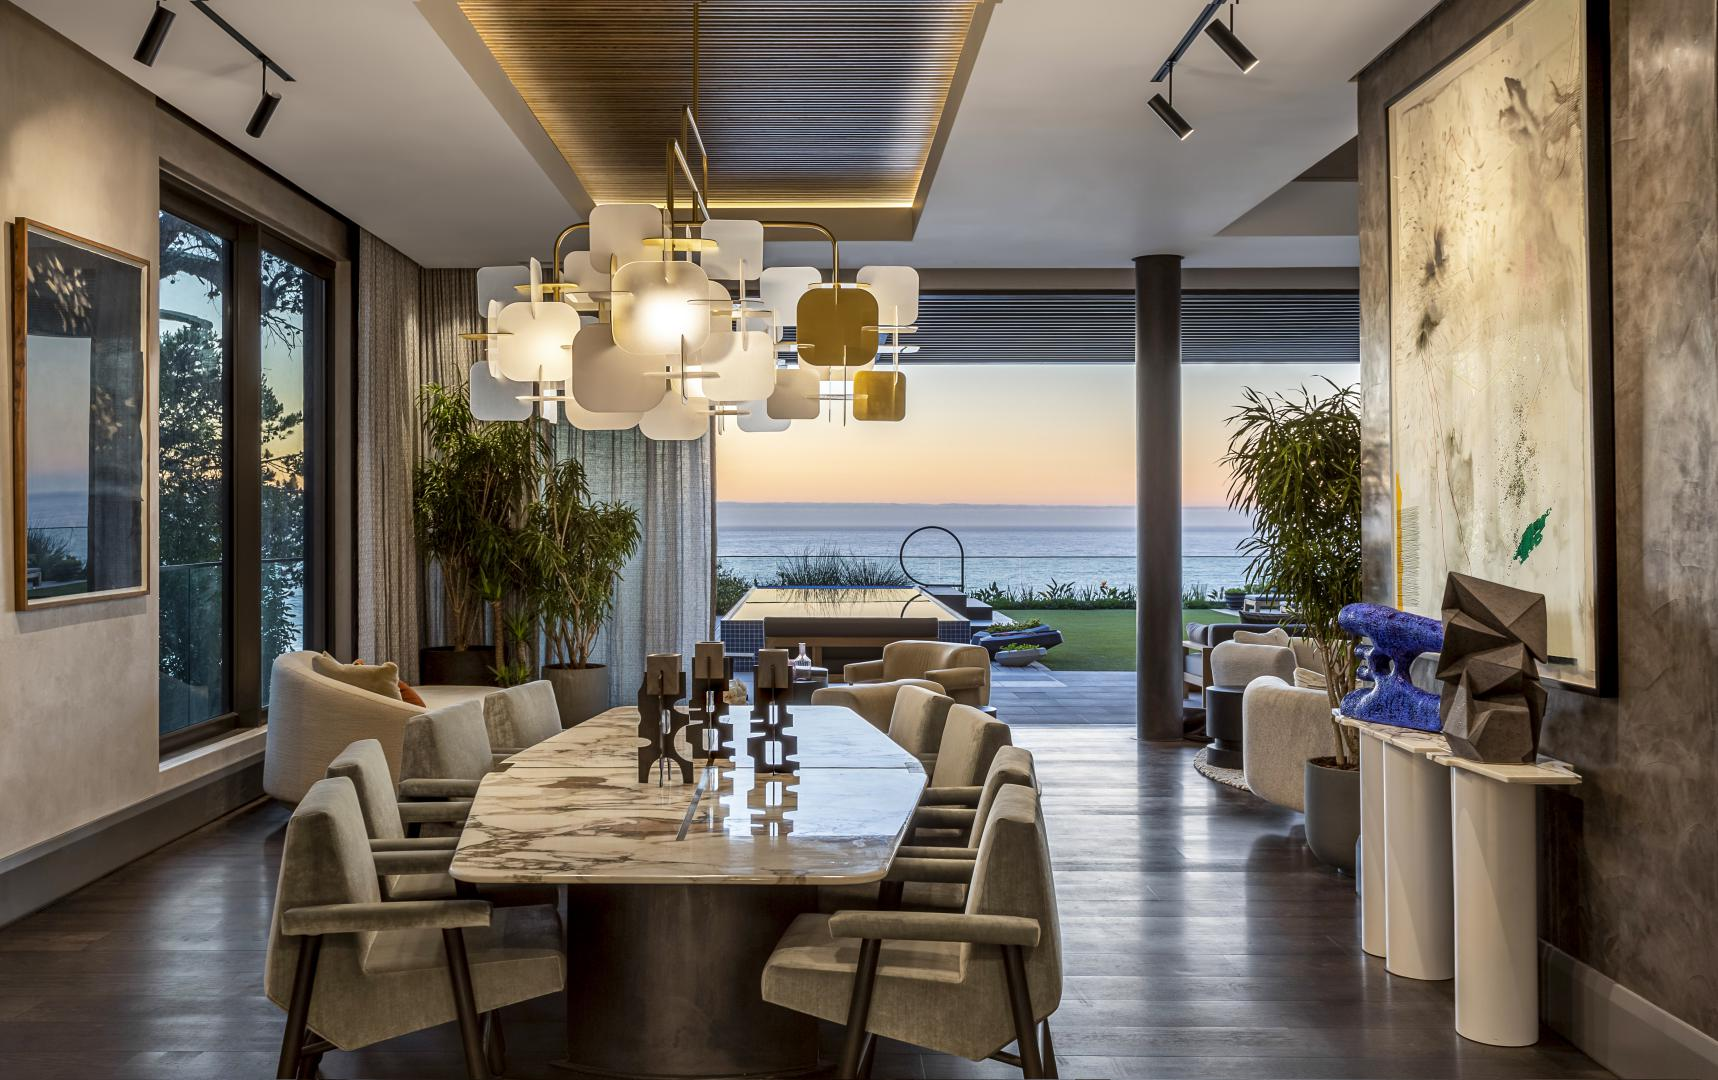 South Villa, a Five Storey Luxury Penthouse in South Africa by ARRCC.